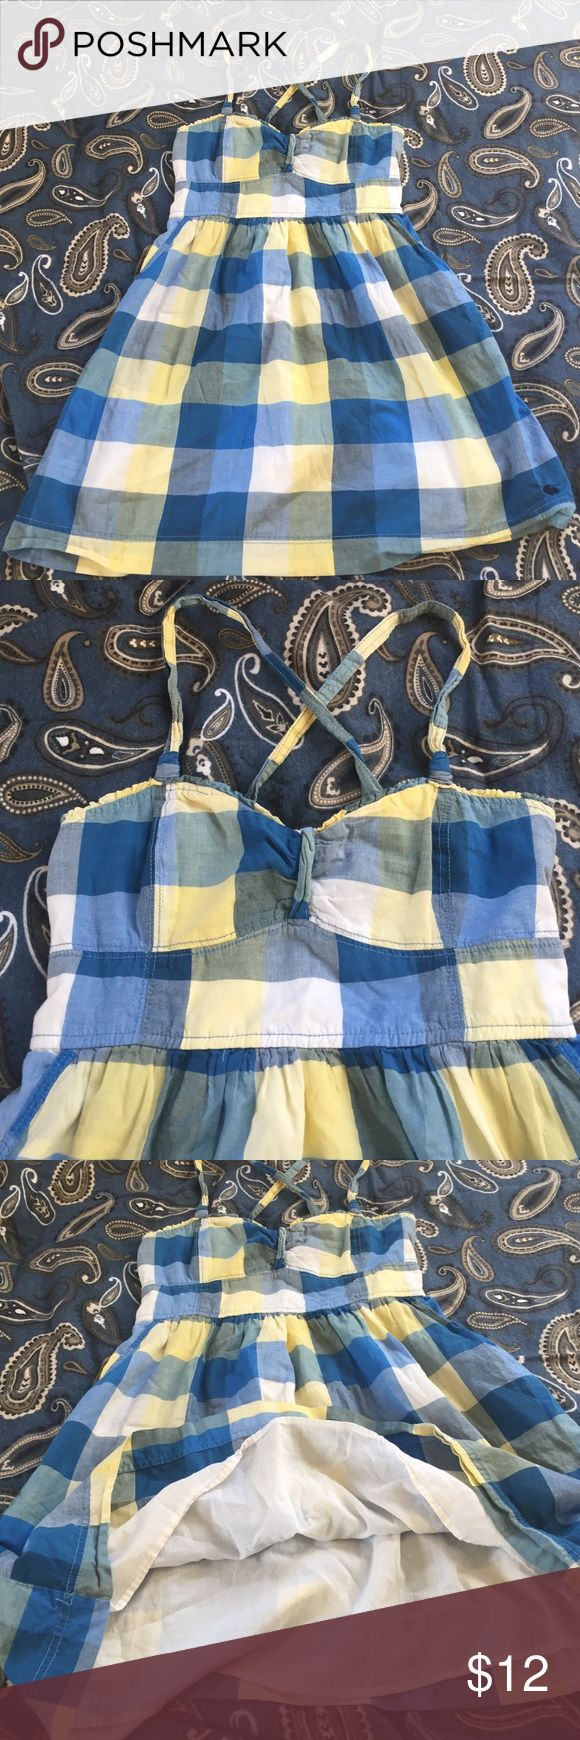 """Abercrombie plaid sundress, size L Blue and yellow check sundress by Abercrombie and Fitch. Size large has smocked back for nice for, and cross crossed straps. Bust is 30"""", waist 28"""" and length from waist to hem 18"""". 🦊 Please use measurements provided and ask all questions prior to purchase. I want happy customers! 😊 I do not model the clothes. Thanks! Abercrombie & Fitch Dresses Mini"""